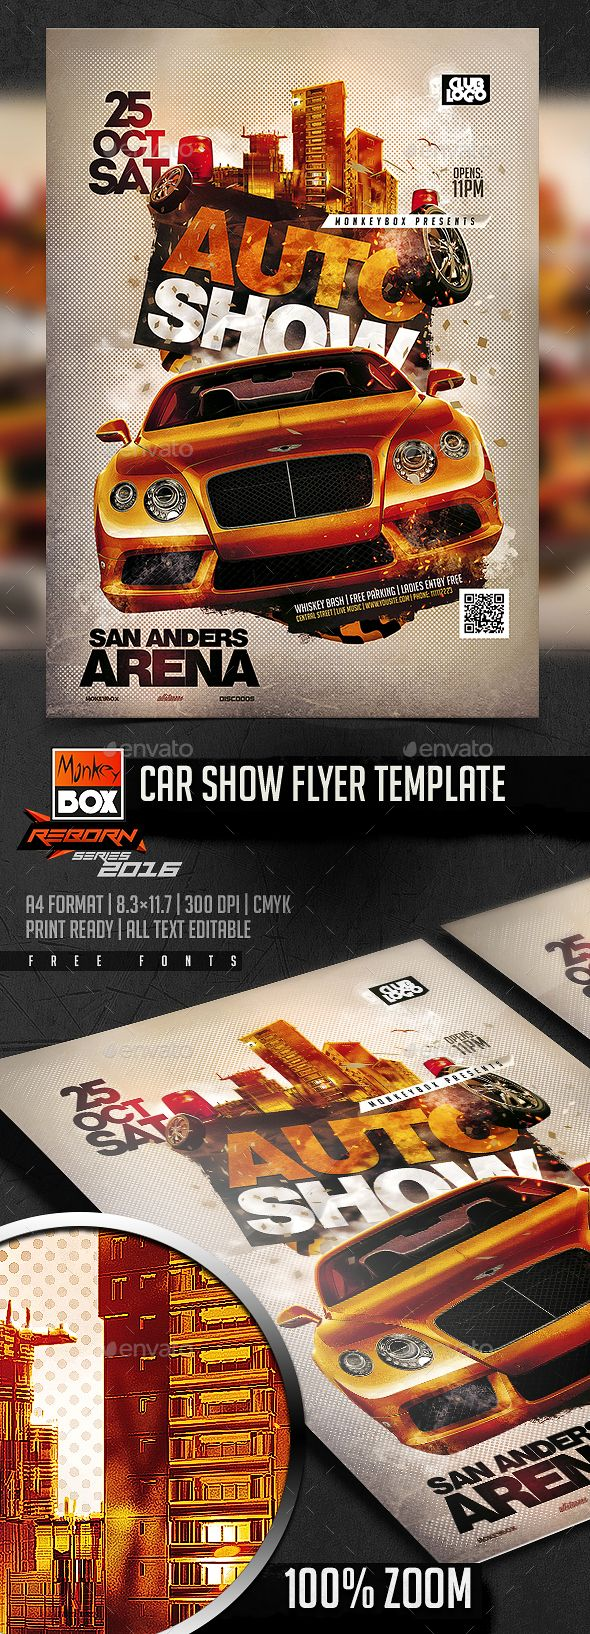 car show flyer template flyer template flyers and psd templates. Black Bedroom Furniture Sets. Home Design Ideas